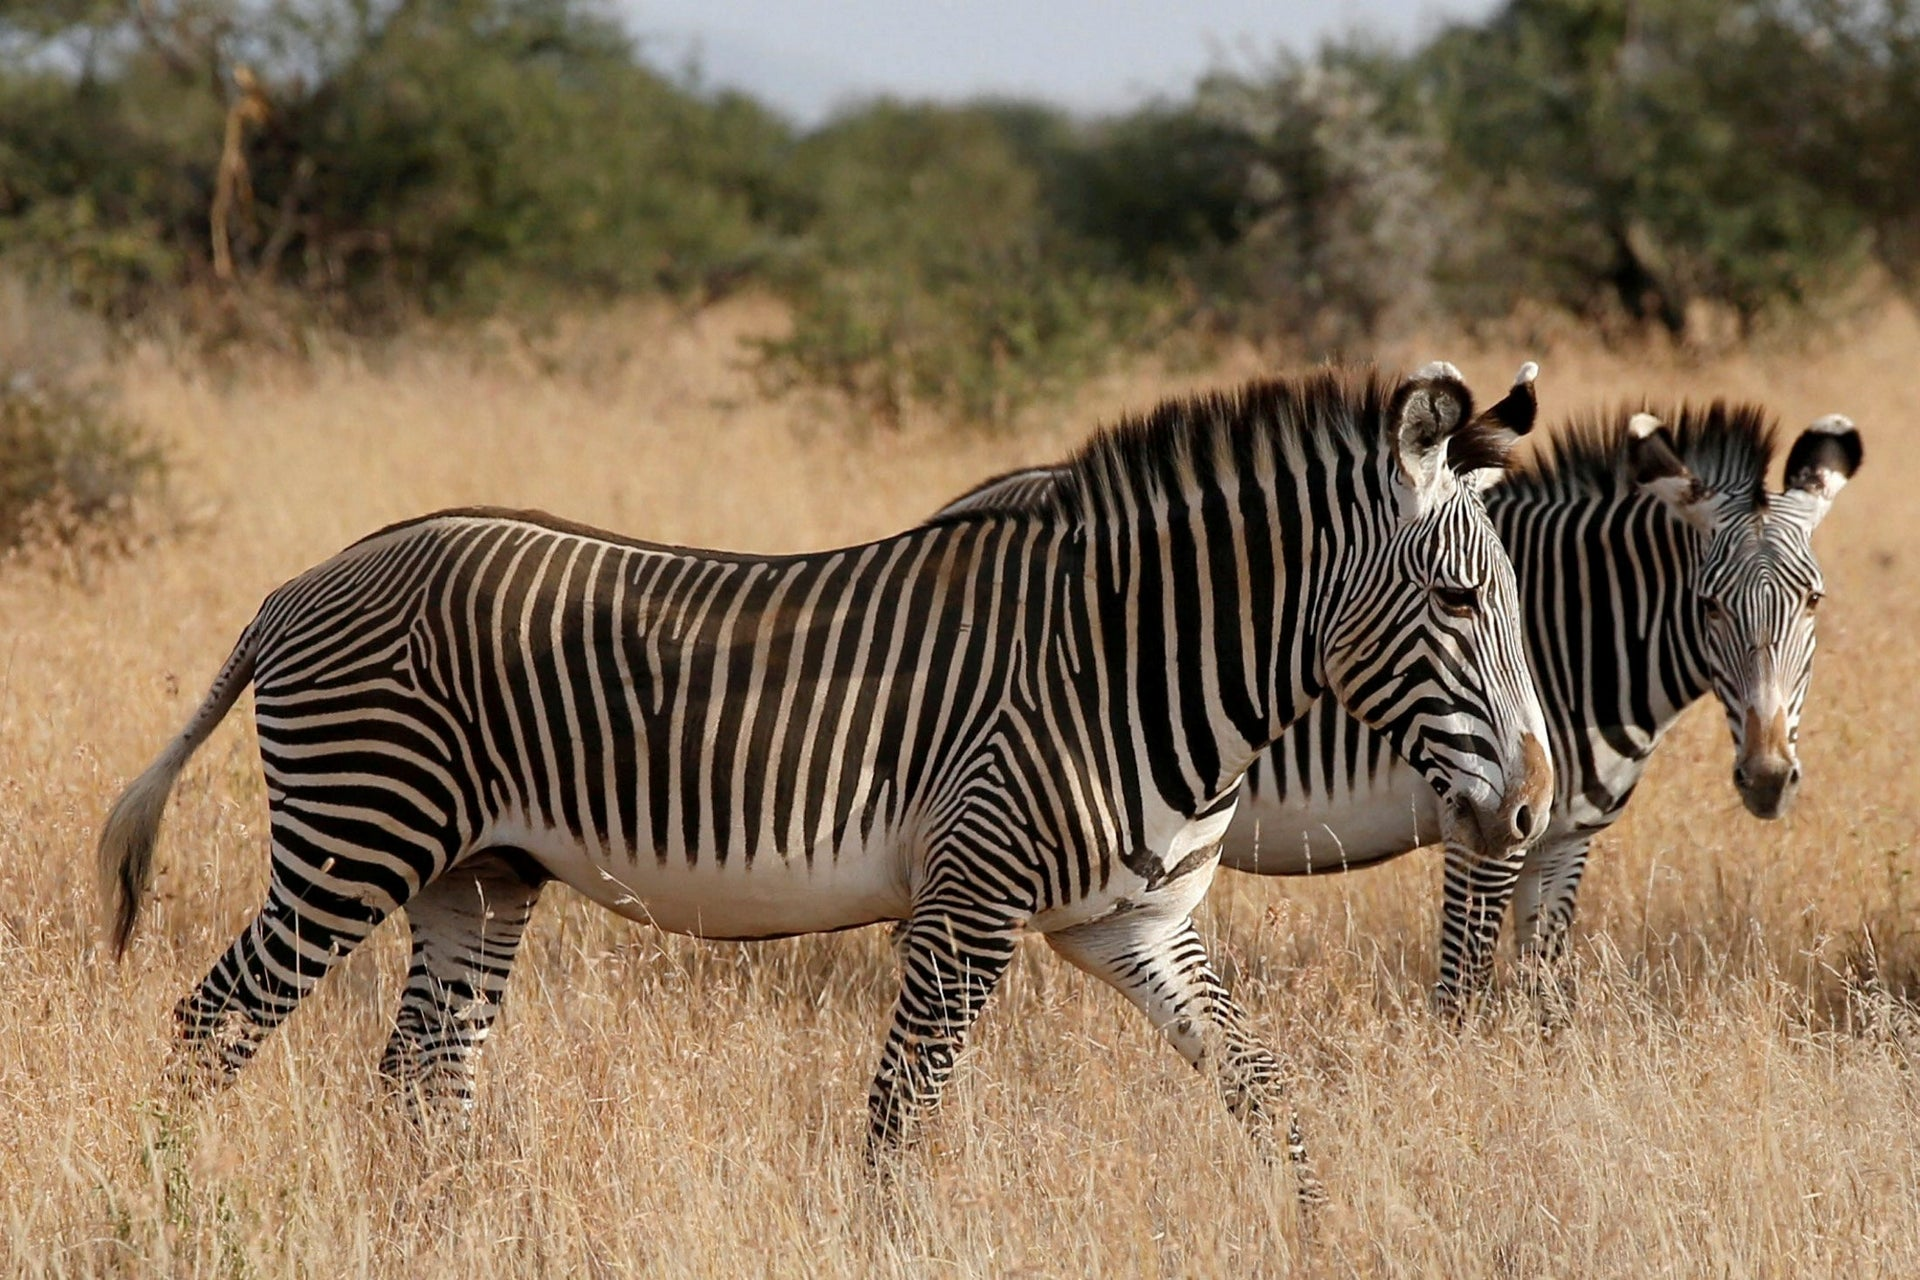 Grevy's zebras, the most threatened species of zebra, graze at the Mpala research centre in Laikipia County, Kenya, January 7, 2018.